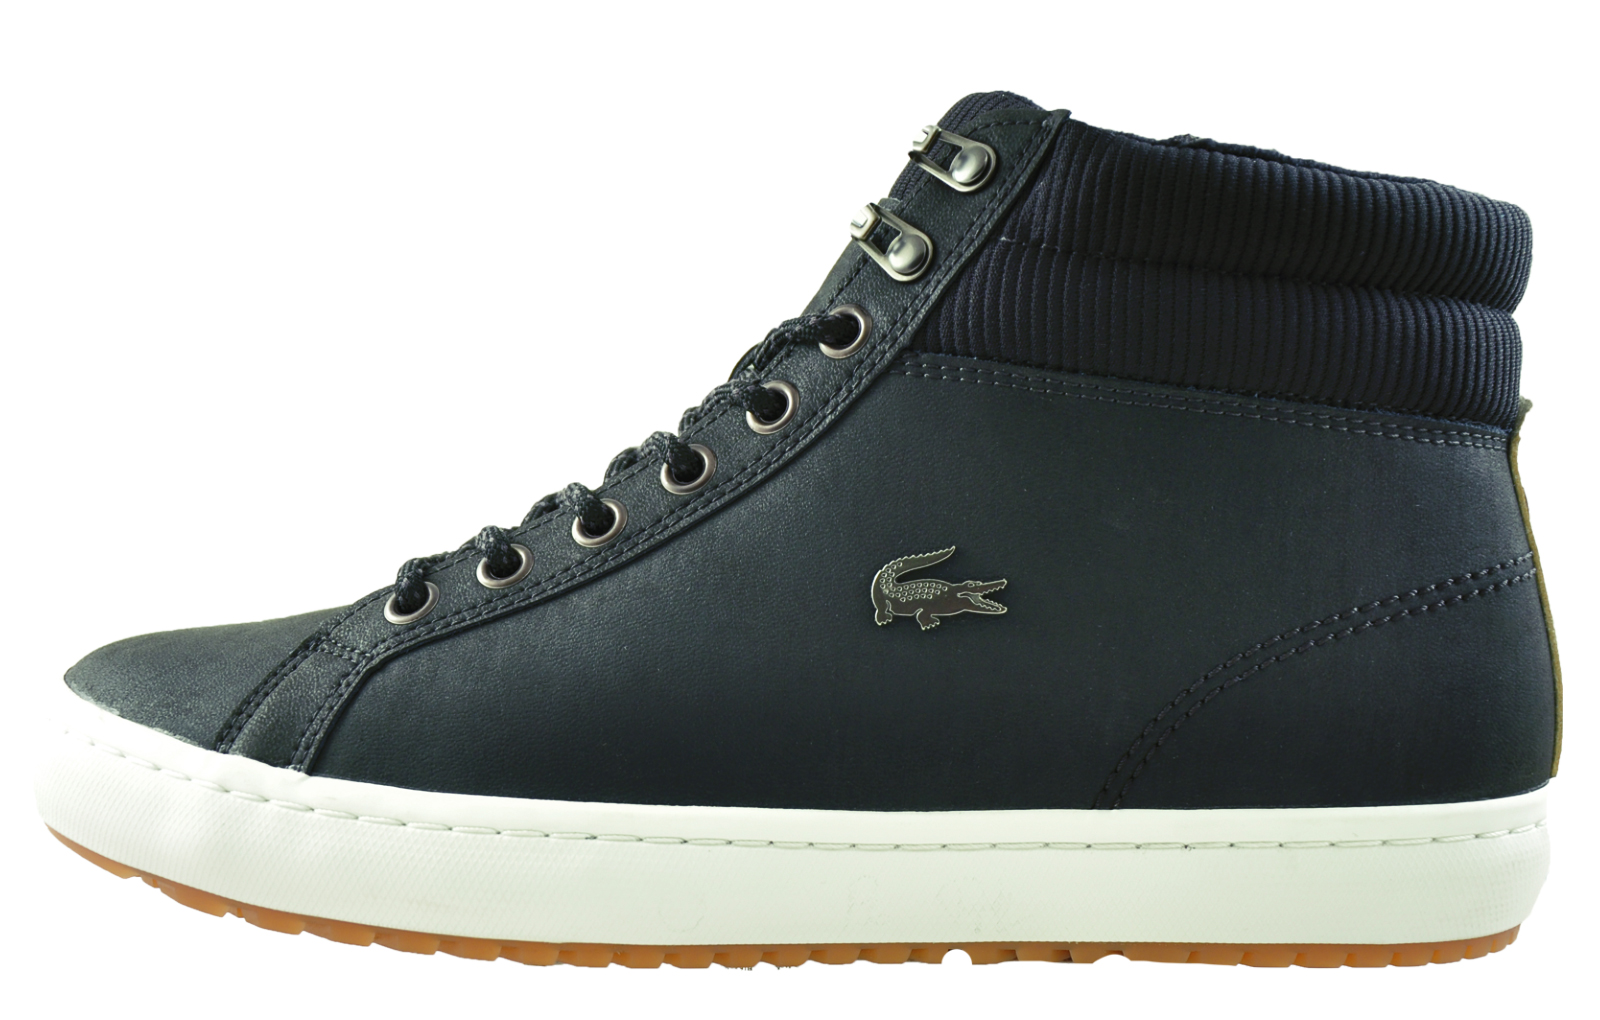 f748eea1bbb9 Lacoste Straightset Insulac B Grade Mens